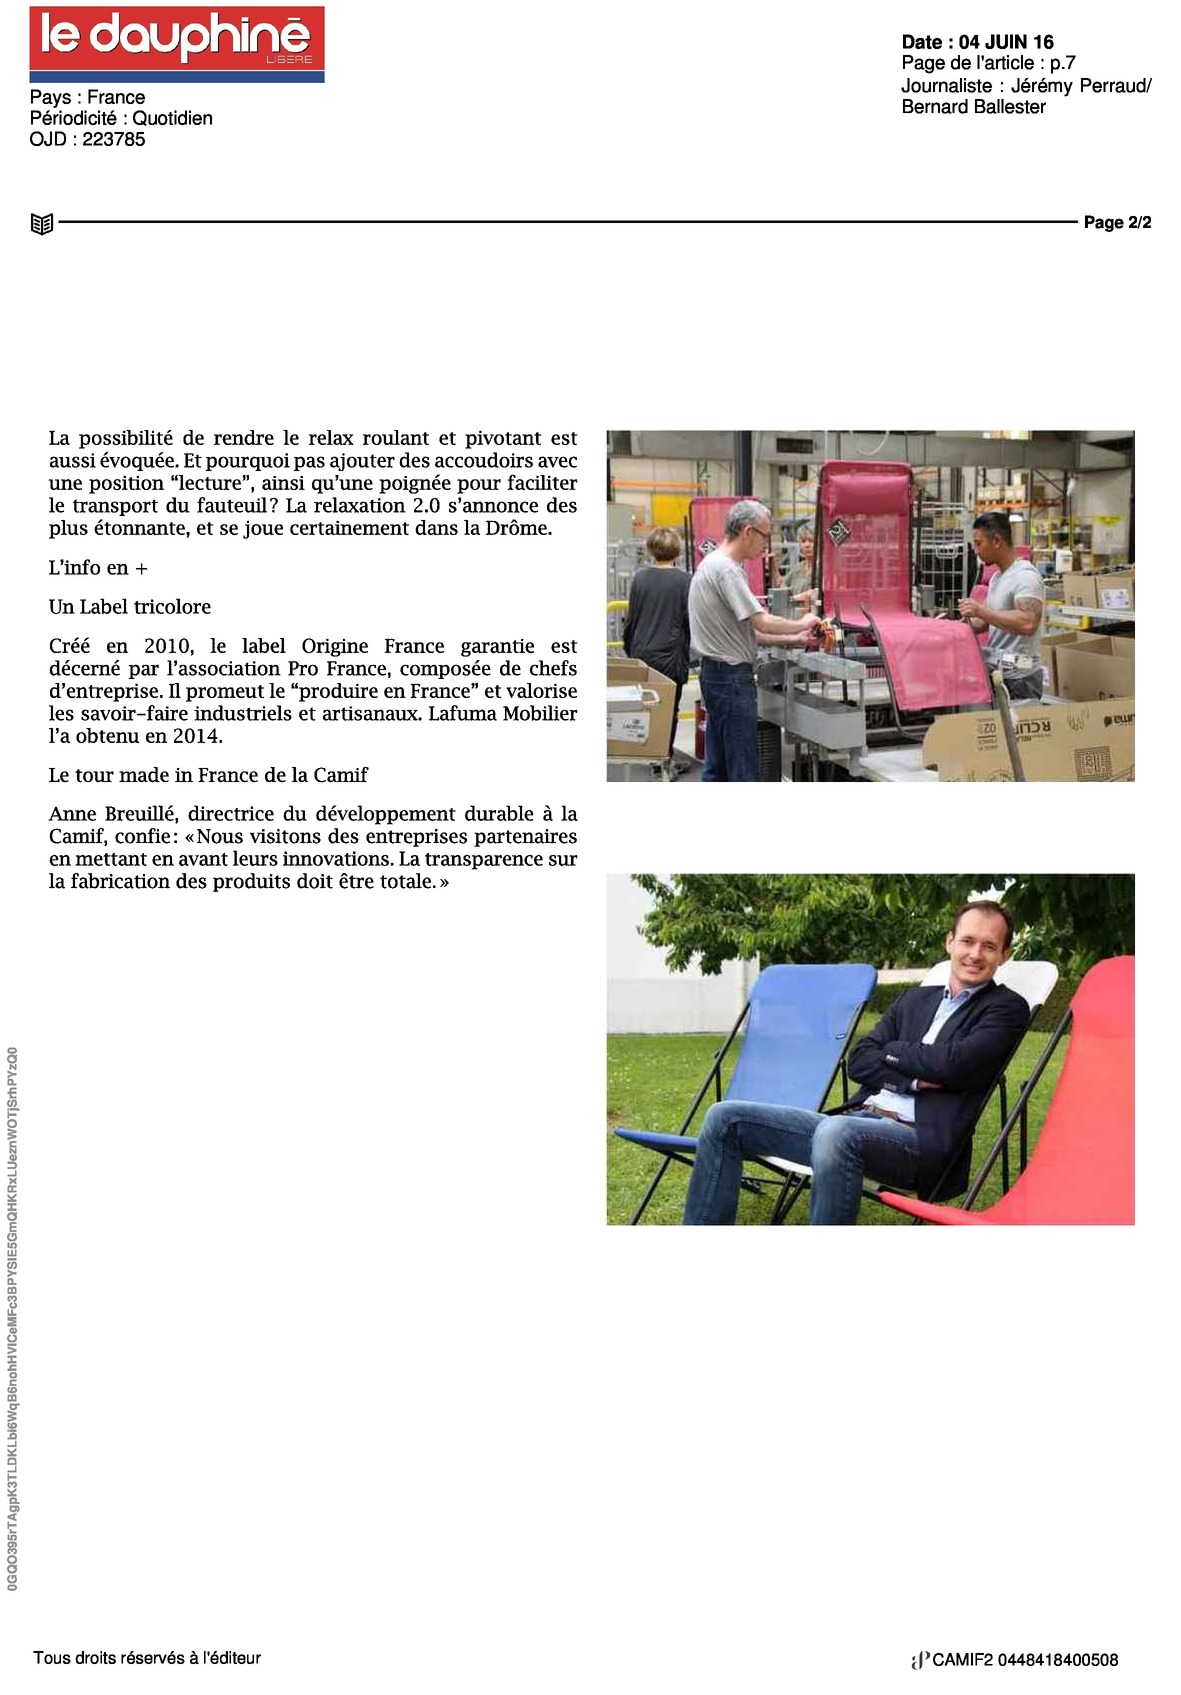 2016-06-041440le_dauphine_libere-page1